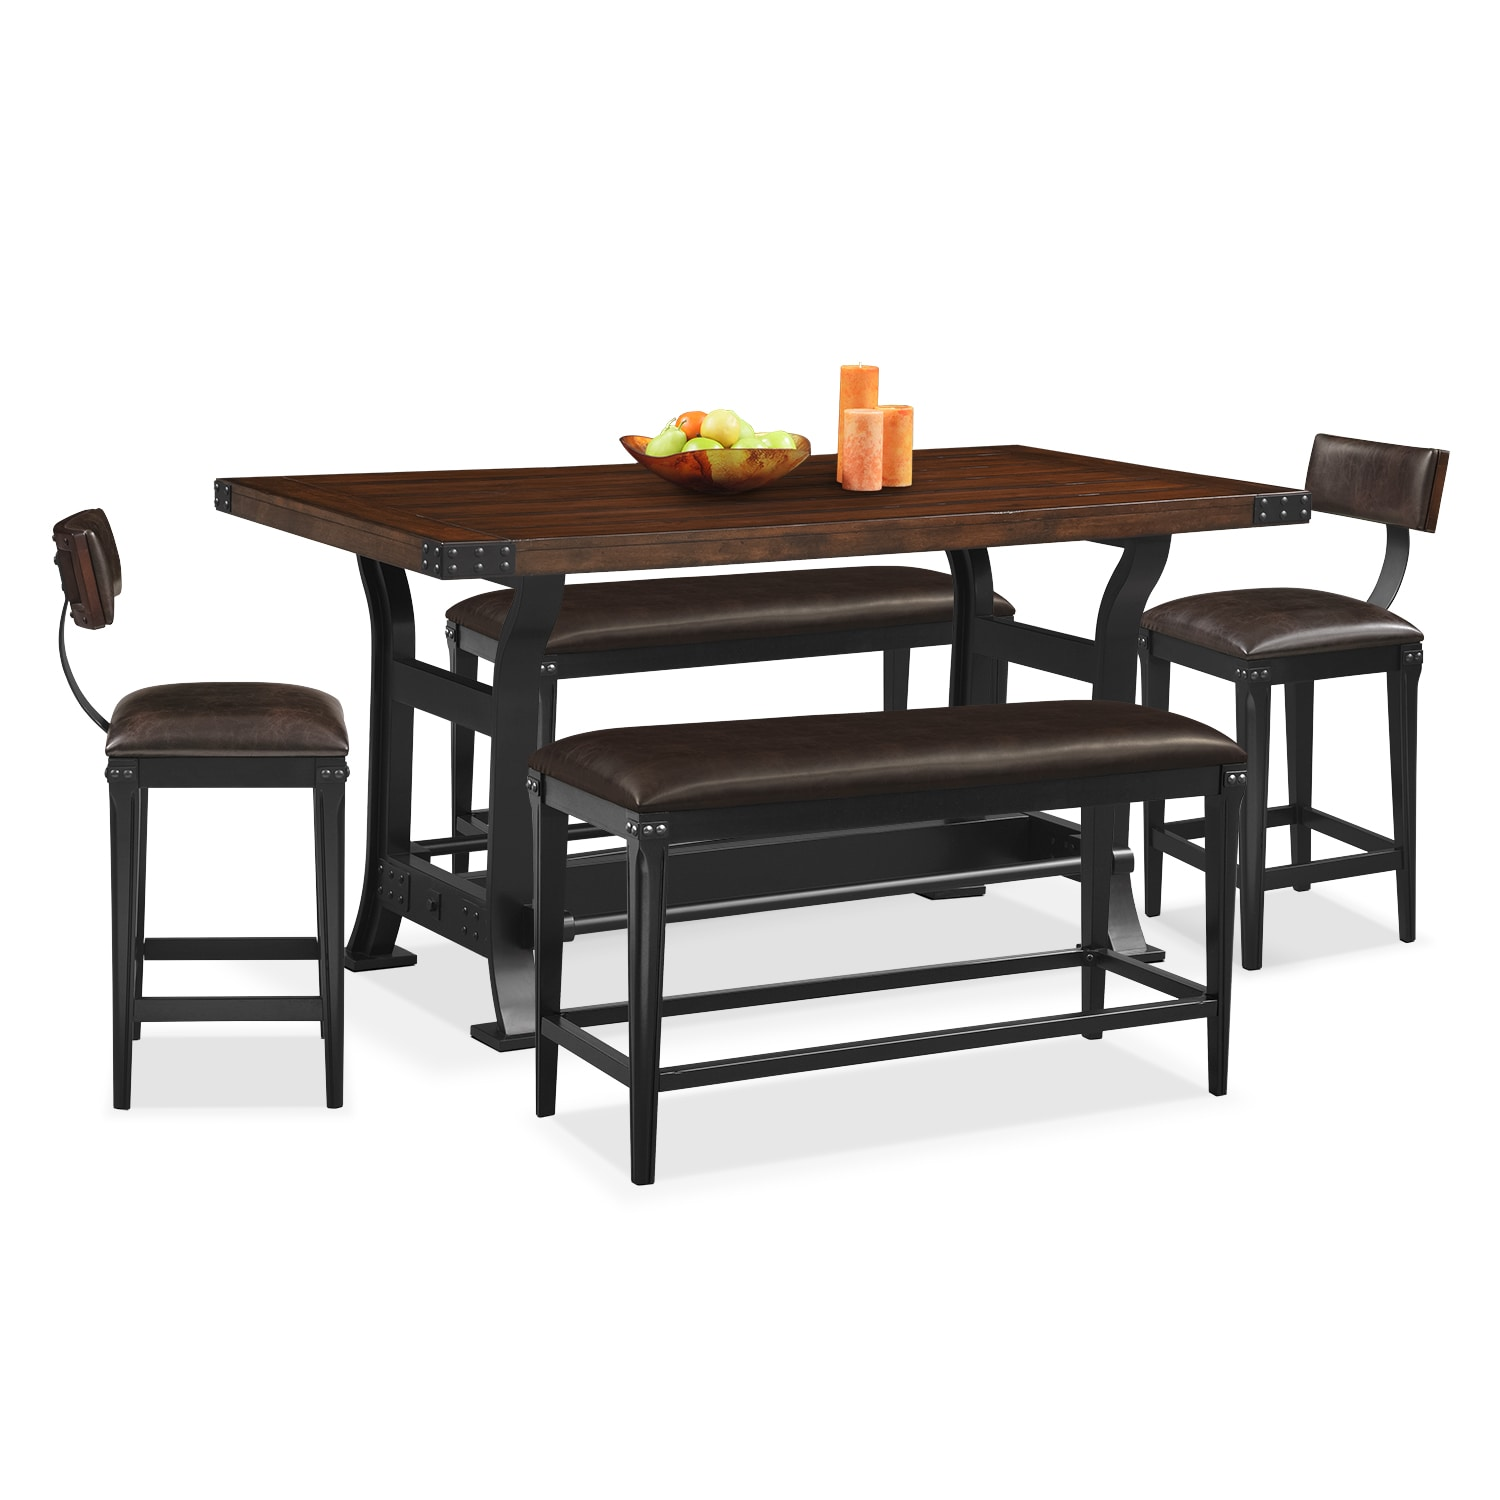 Dining Room Furniture - Newcastle 5 Pc. Counter-Height Dining Room w/ 2 Stools and 2 Benches